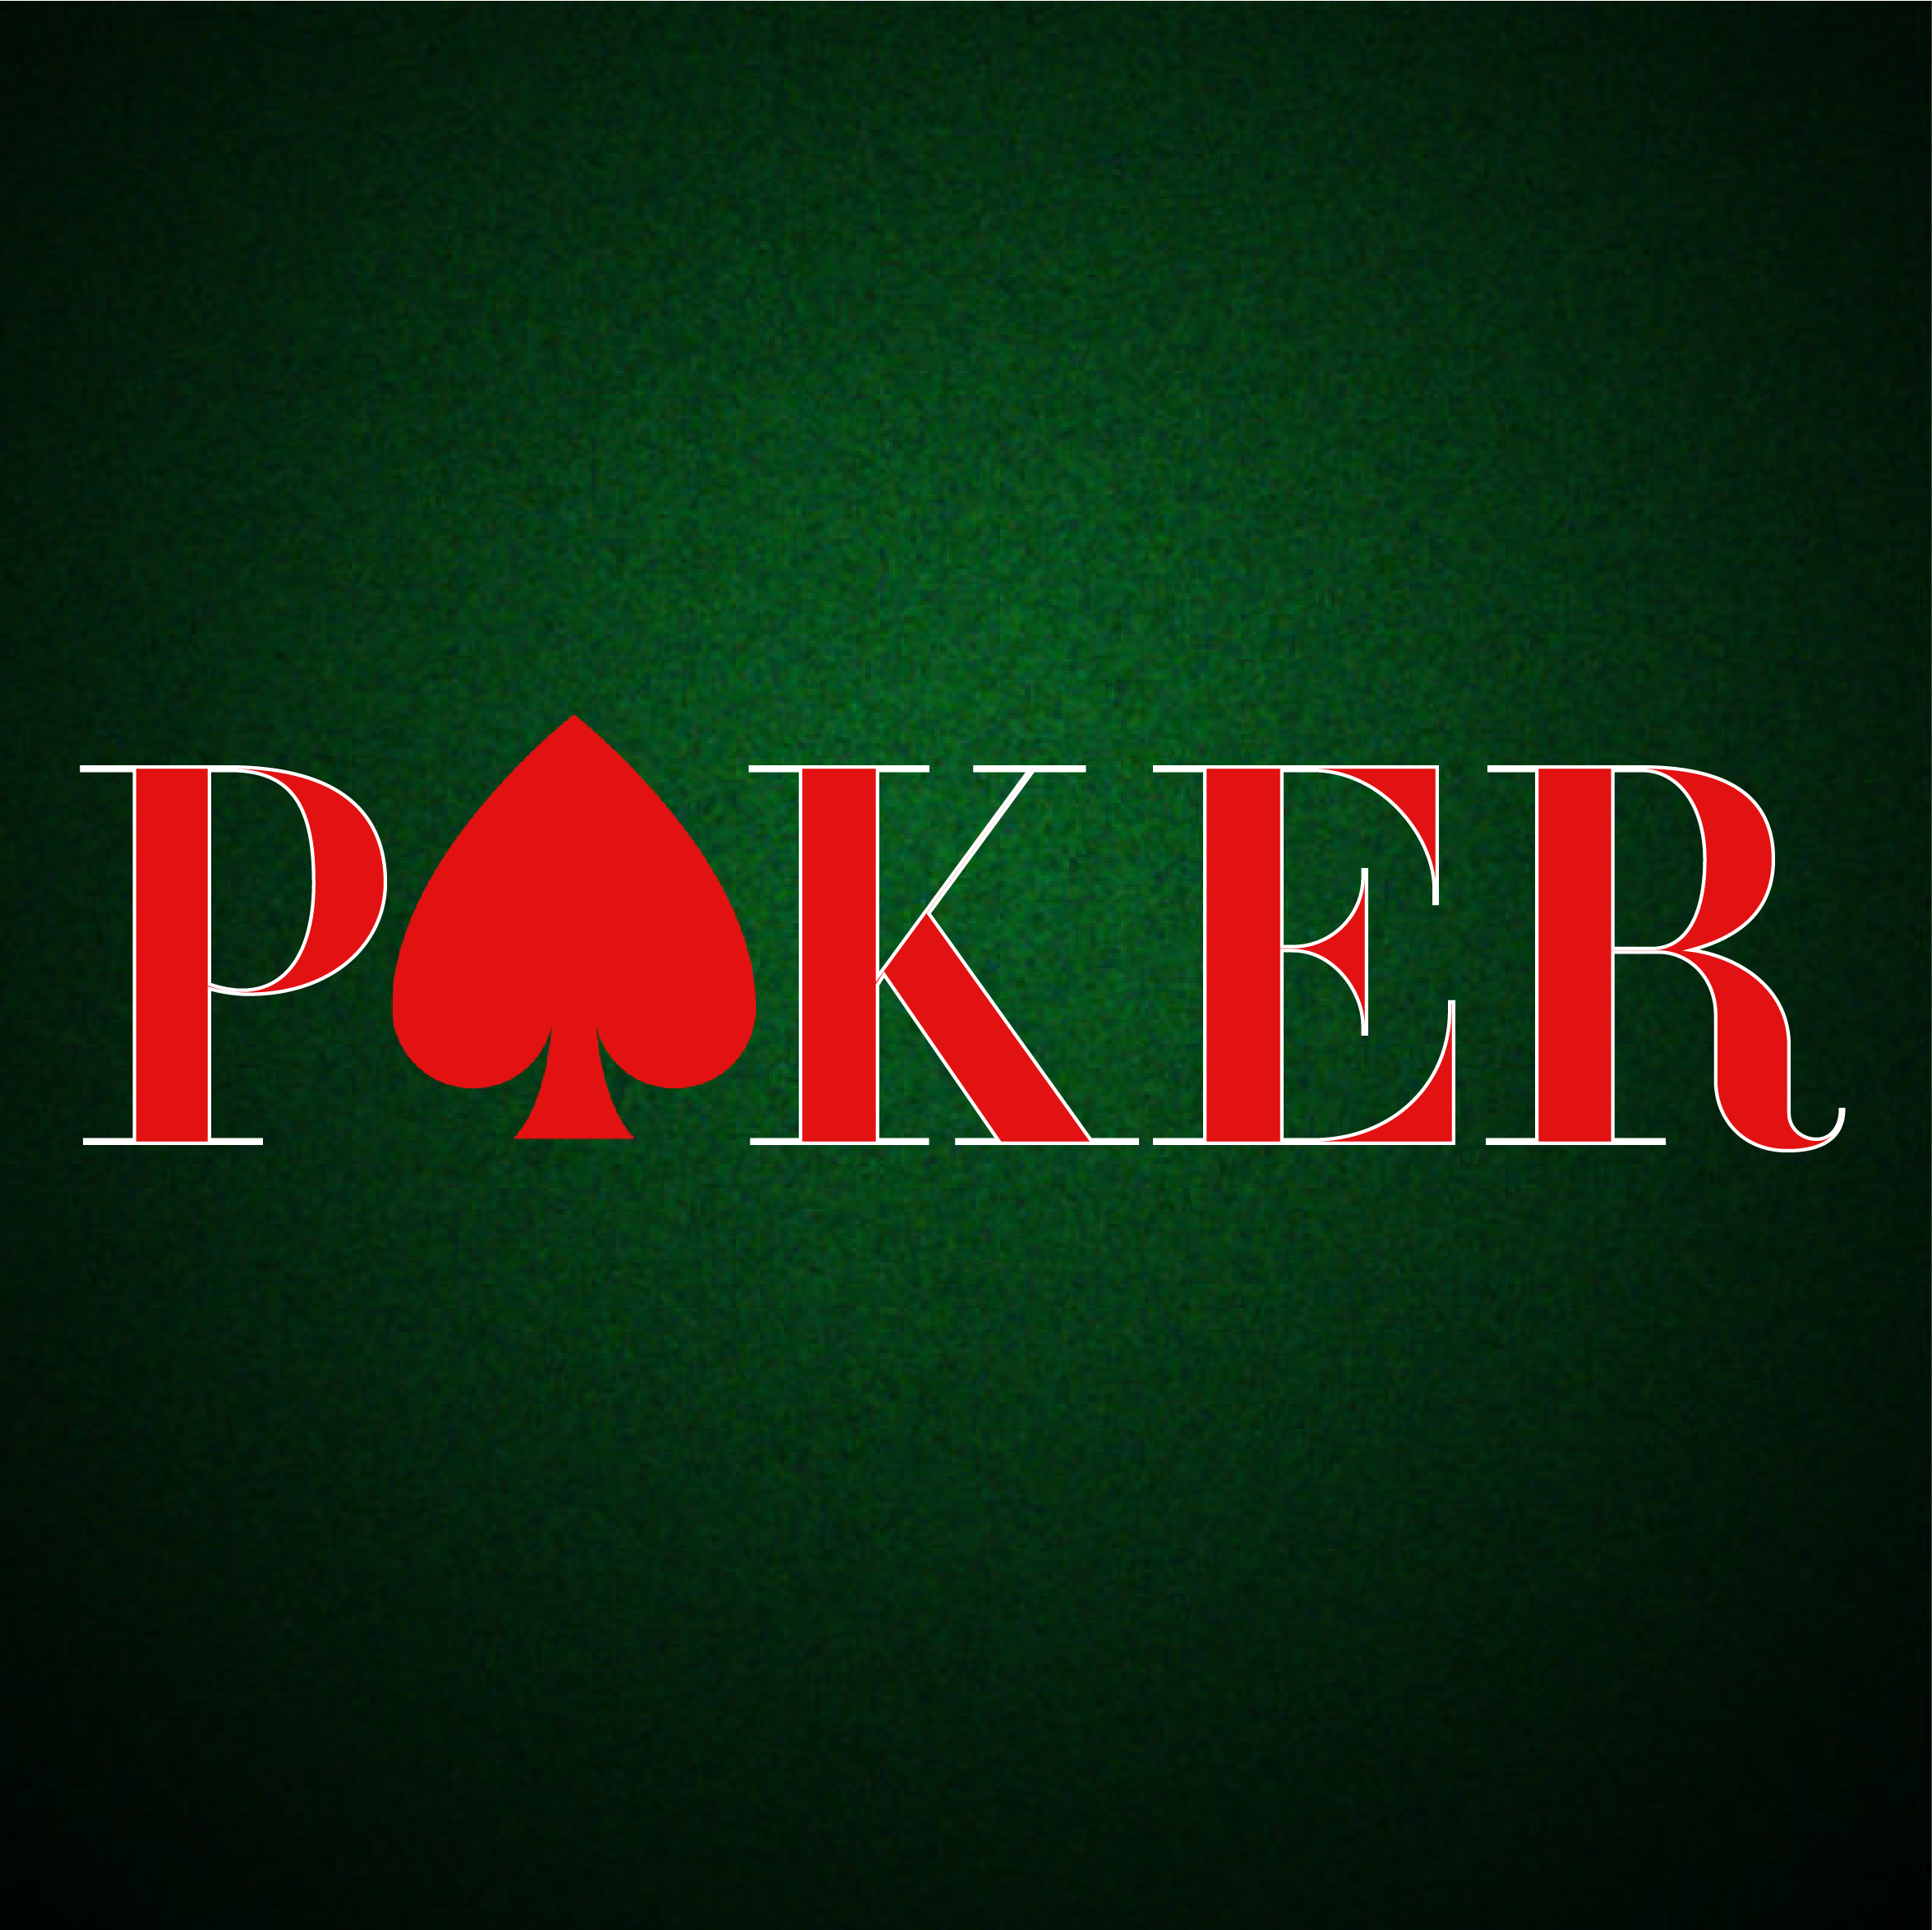 FRIDAY POKER   TURBO Start: 7:30pm. Late Entry: 9pm $18 Entry Fee  LATE NIGHT PORKER Rego: 10pm | Start: 10:30pm Late Entry: 12:30am $28 Entry Fee